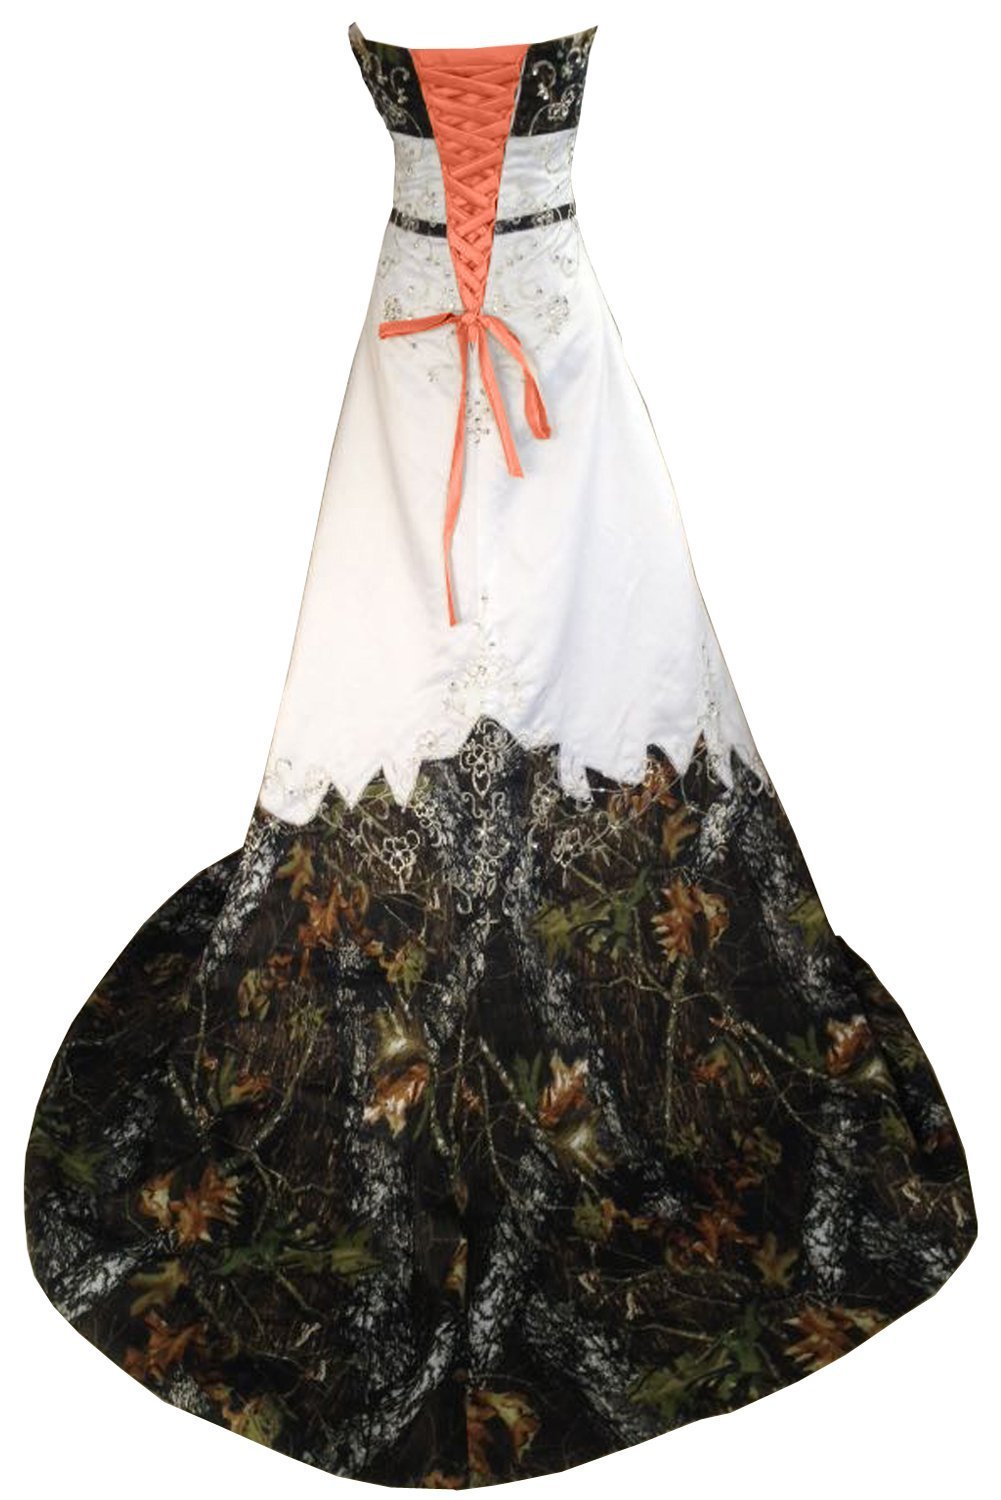 Zvocy Women S Plus Size Camo Wedding Dresses Long Prom Dresses Embroidery Camouflage Bridal Gown White Orange 8 Buy Online In Belarus At Desertcart Productid 197601005